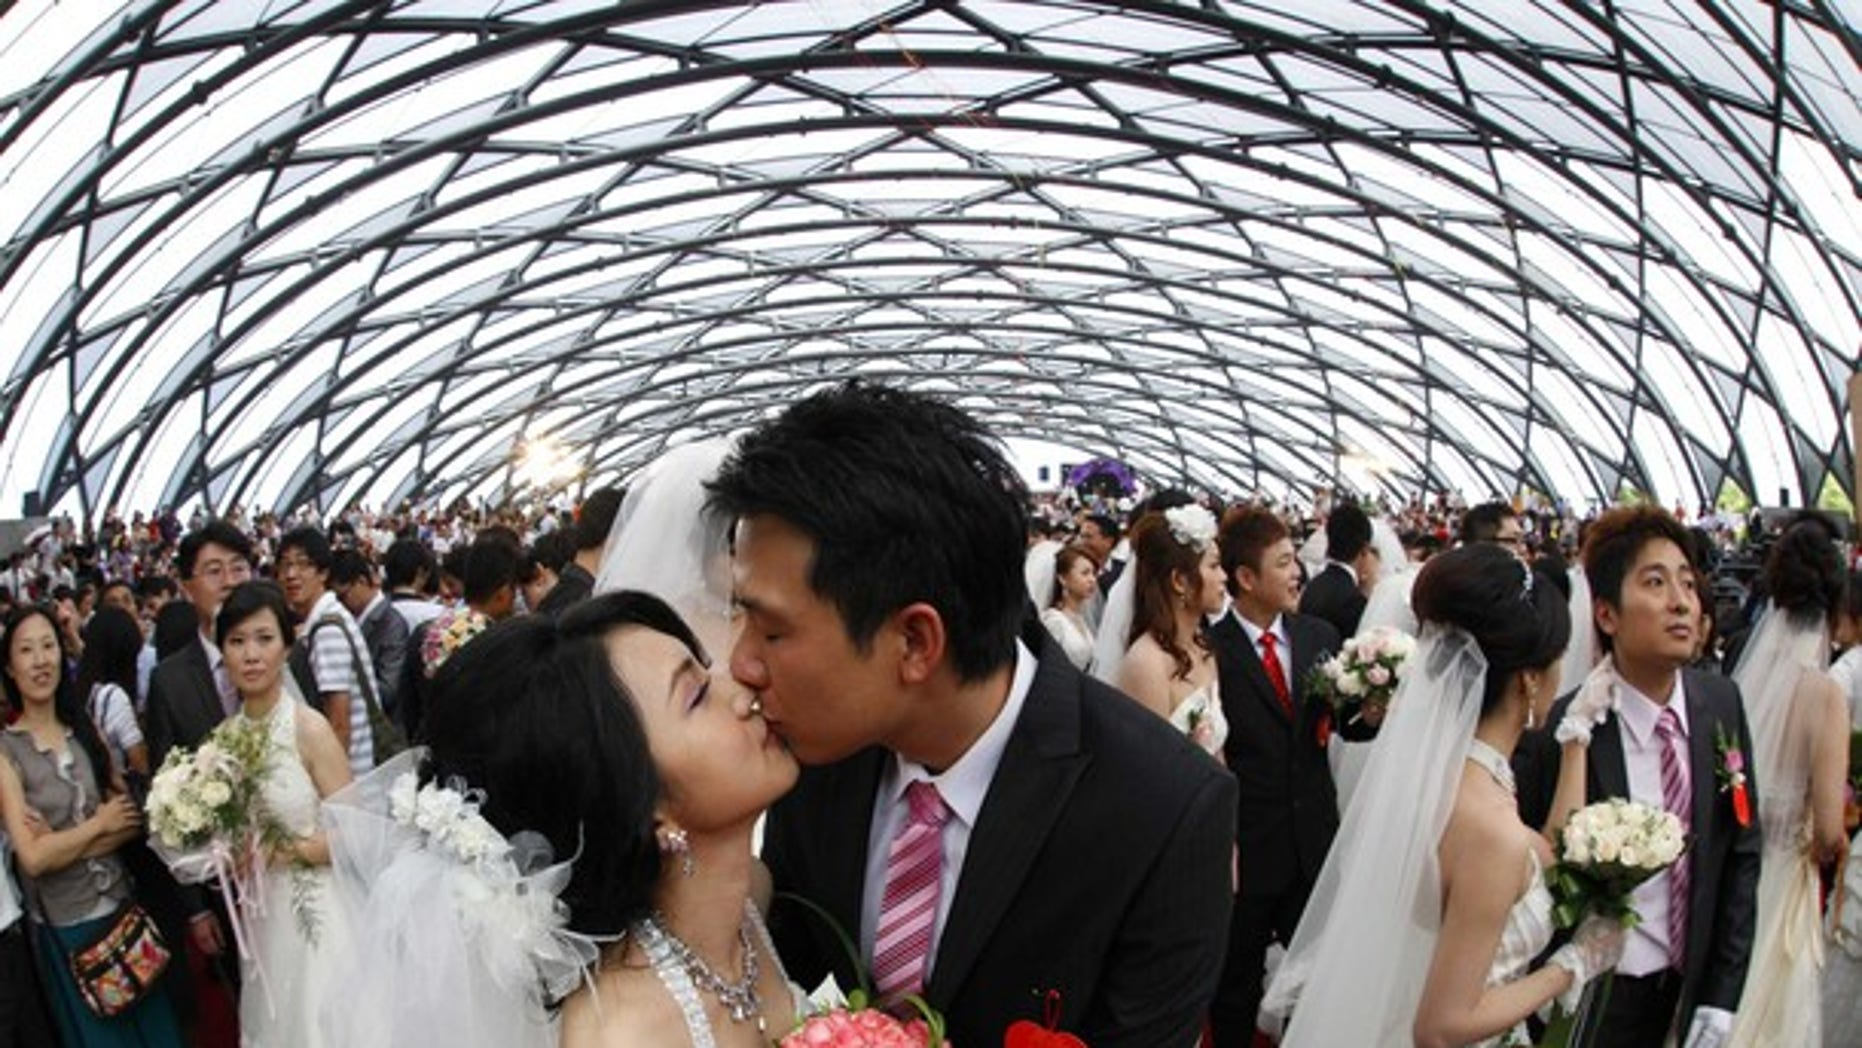 Zheng Ya-yuan (L), 32, and Chang Hong-chang, 31, who have been dating for six years, kiss during a mass wedding ceremony at the Taipei Flora Expo Hall September 9, 2010. A mass wedding ceremony was held for 163 couples on Thursday on the ninth day of the ninth month in the 99th year since the beginning of the Republic of China (Taiwan). The date which makes out to 9.9.99 is an auspicious number as the number ���9��� (pronounced jiu in Chinese) is a homophone that means lasting.  REUTERS/Nicky Loh (TAIWAN - Tags: SOCIETY IMAGES OF THE DAY)